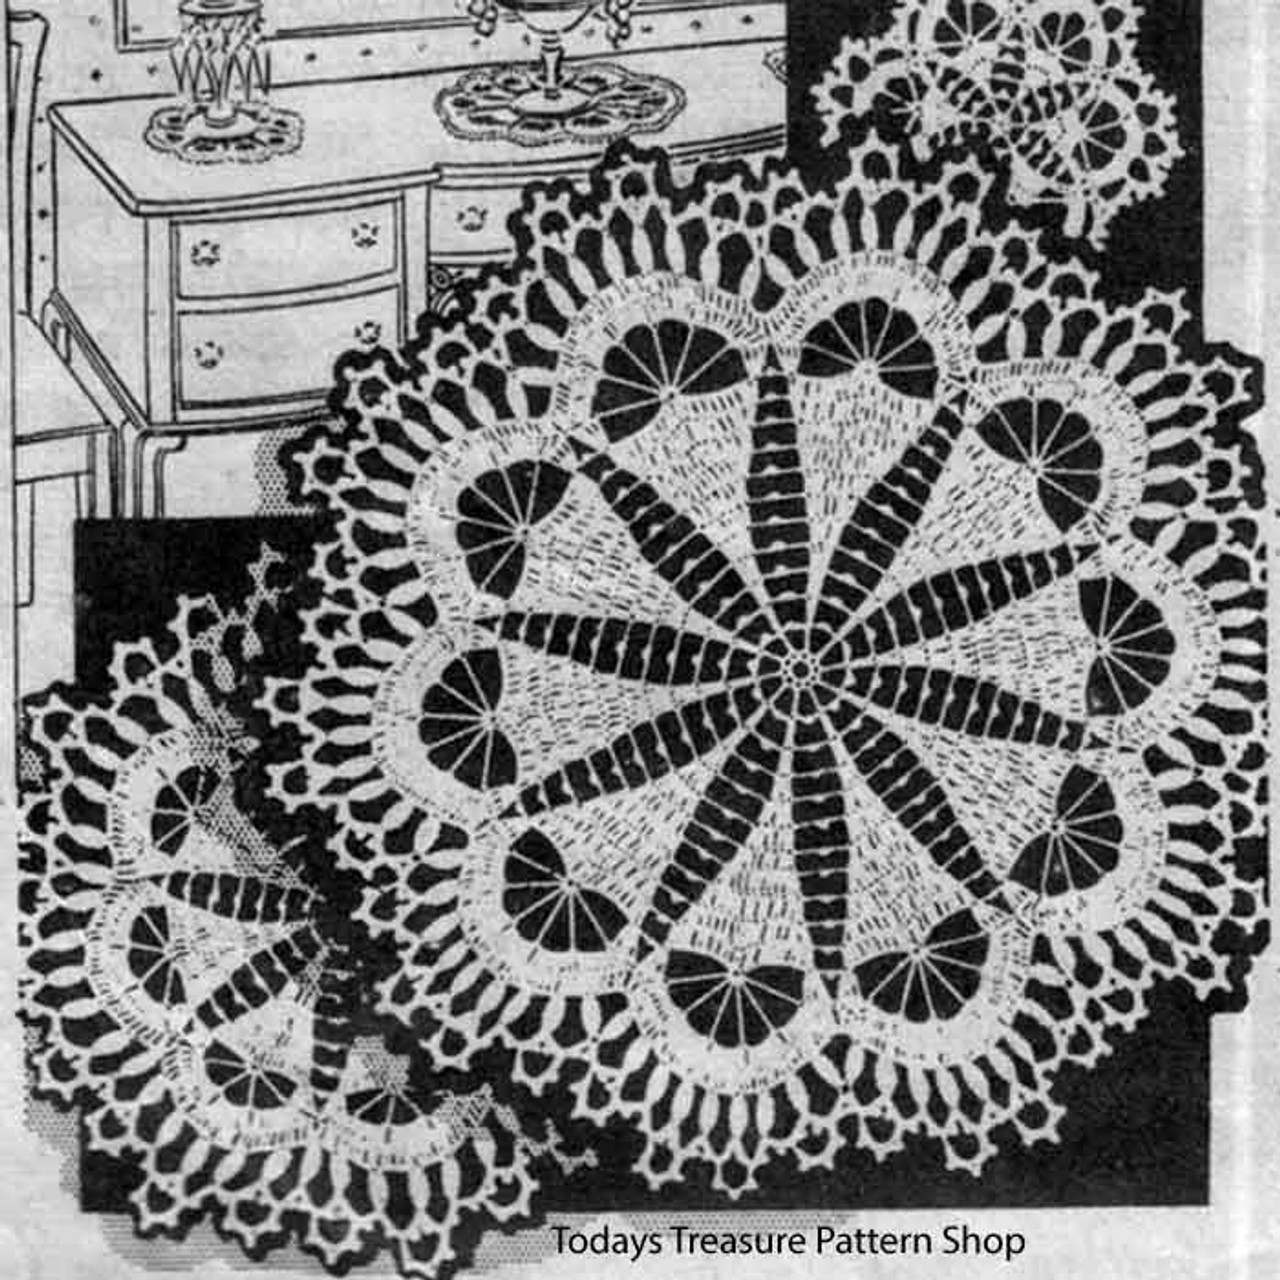 Vintage Flower Crocheted Doily Pattern